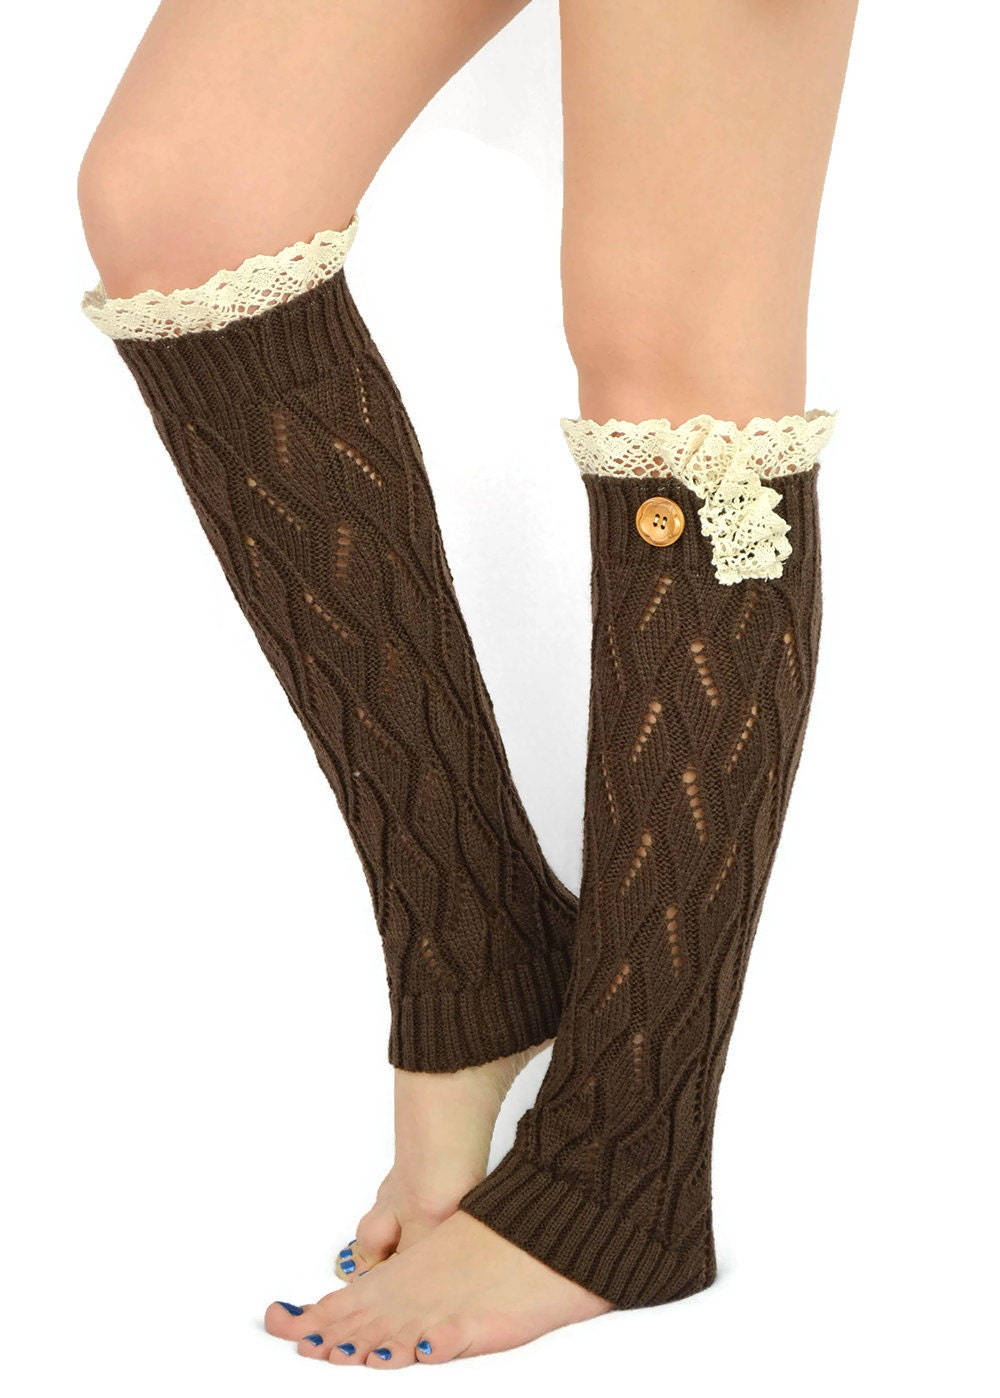 Knitted Boot Socks BROWN Legwarmers Lace Leg Warmers By JuicyBows